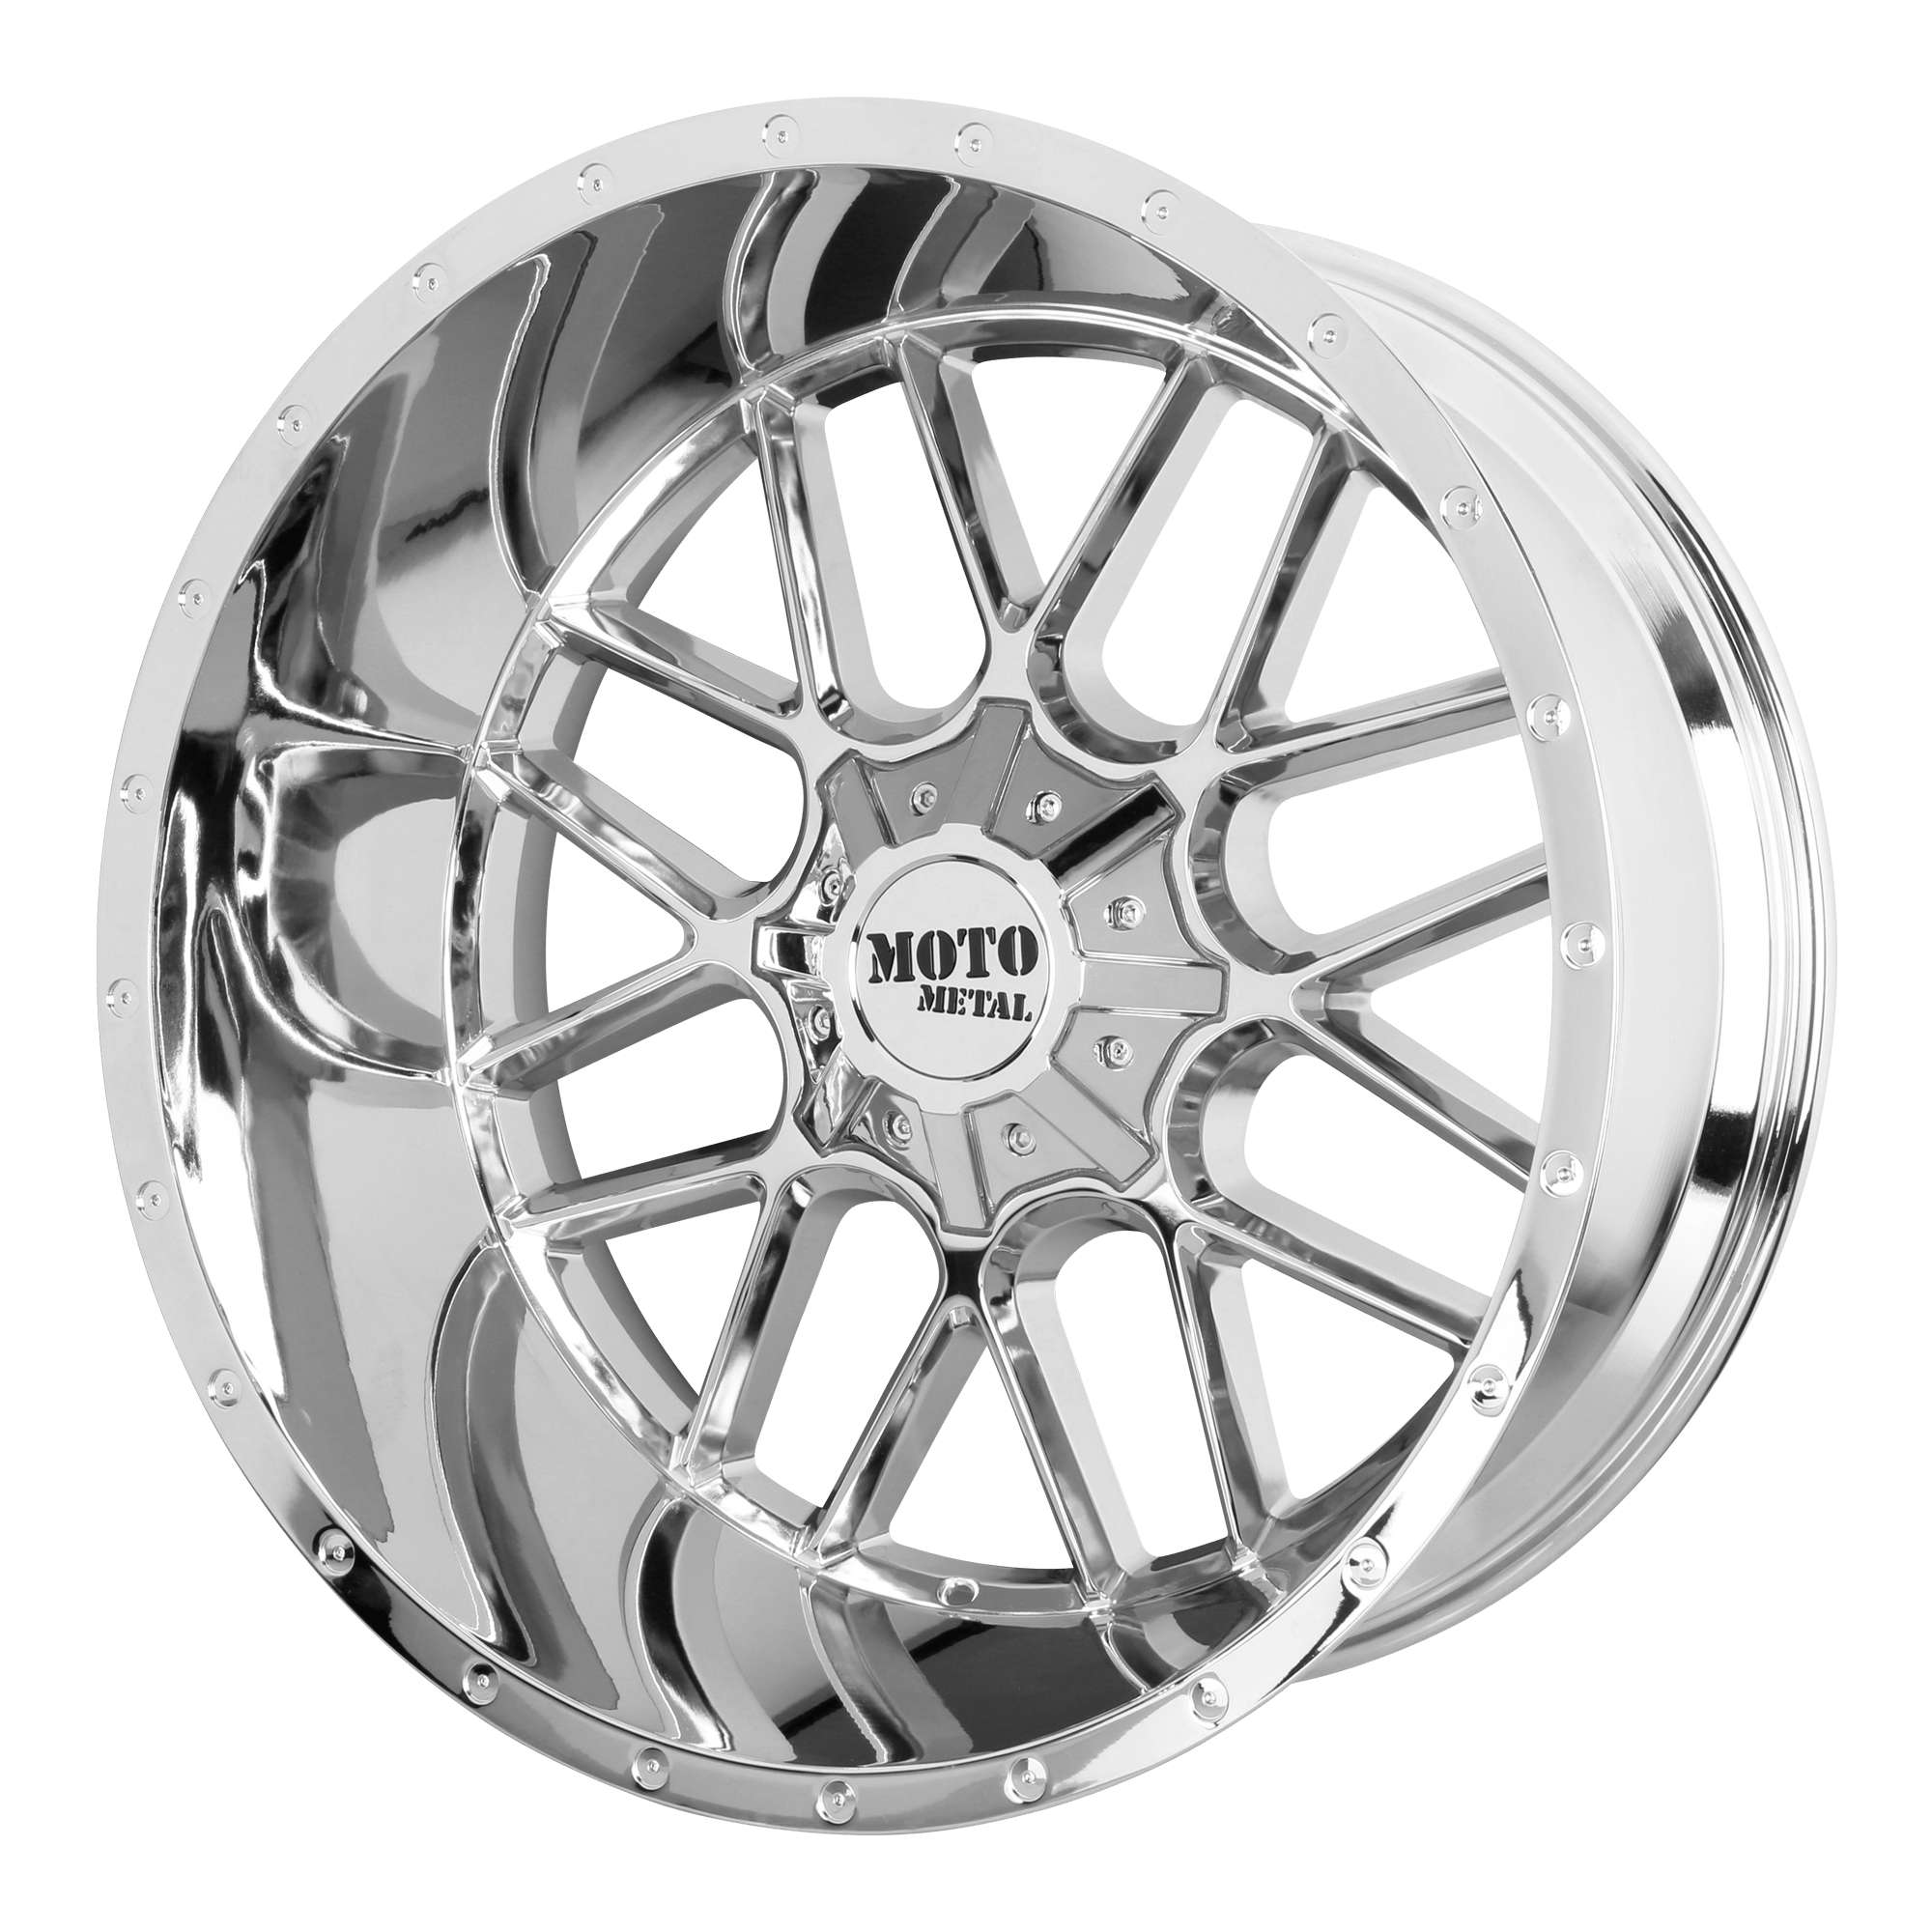 Siege mm wheels and. Drawing chrome picture download